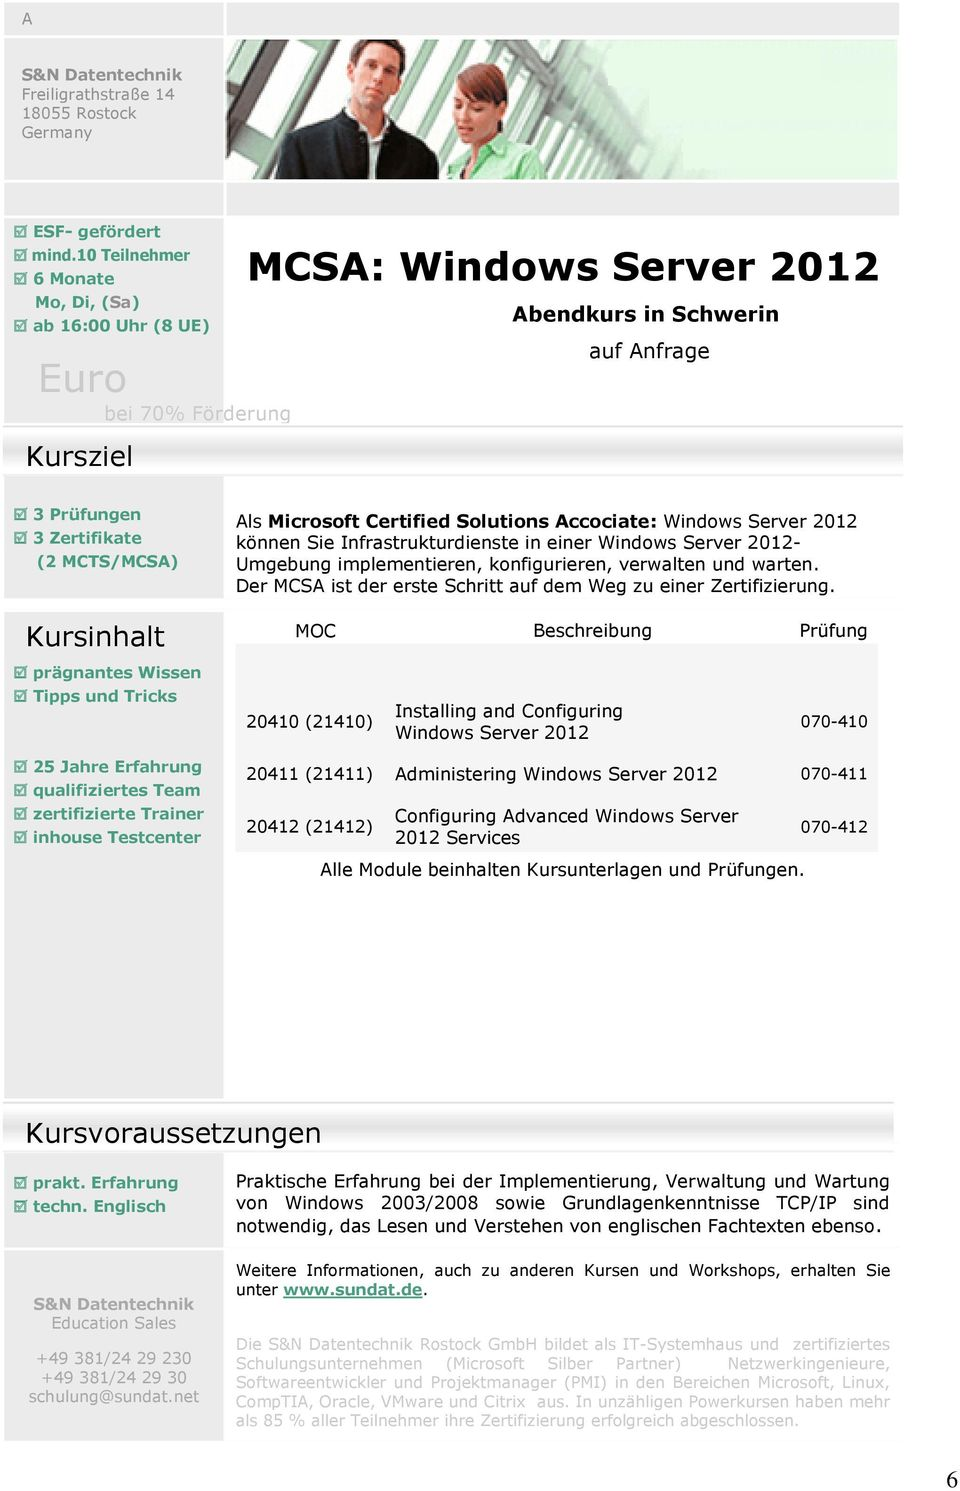 Erfahrung qualifiziertes Team zertifizierte Trainer inhouse Testcenter Als Microsoft Certified Solutions Accociate: Windows Server 2012 können Sie Infrastrukturdienste in einer Windows Server 2012-